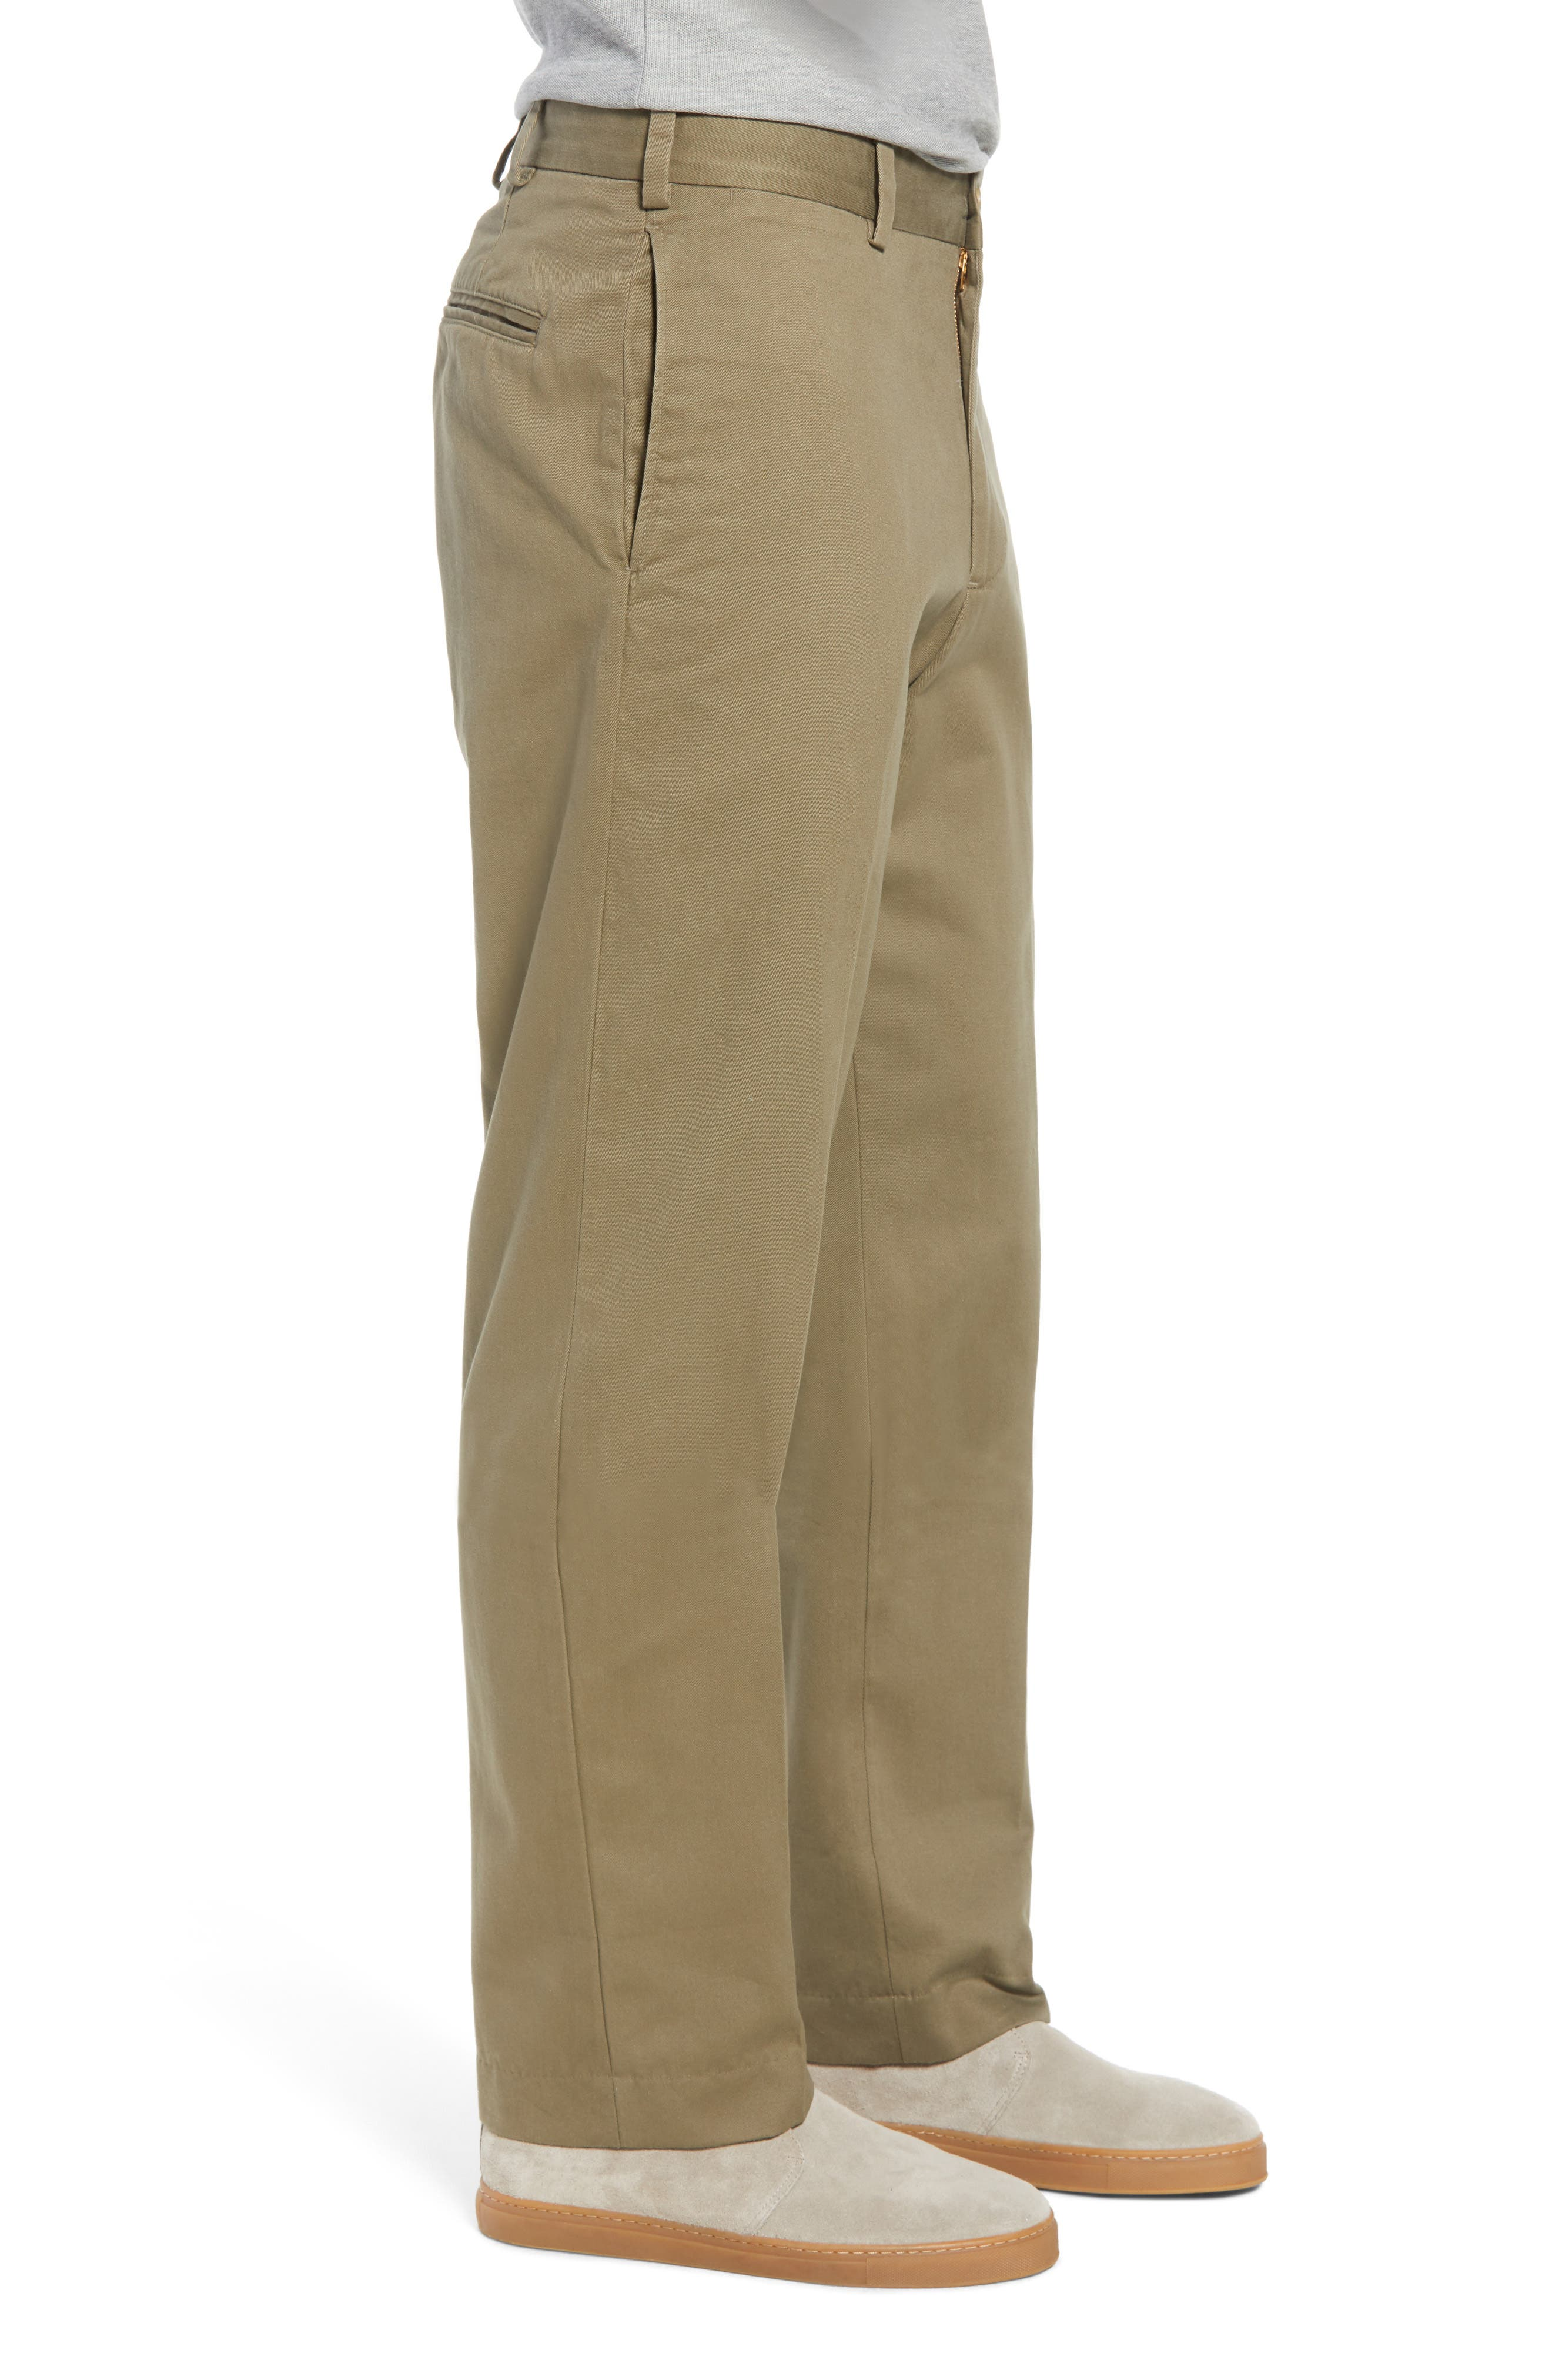 M2 Classic Fit Flat Front Vintage Twill Pants,                             Alternate thumbnail 3, color,                             Olive